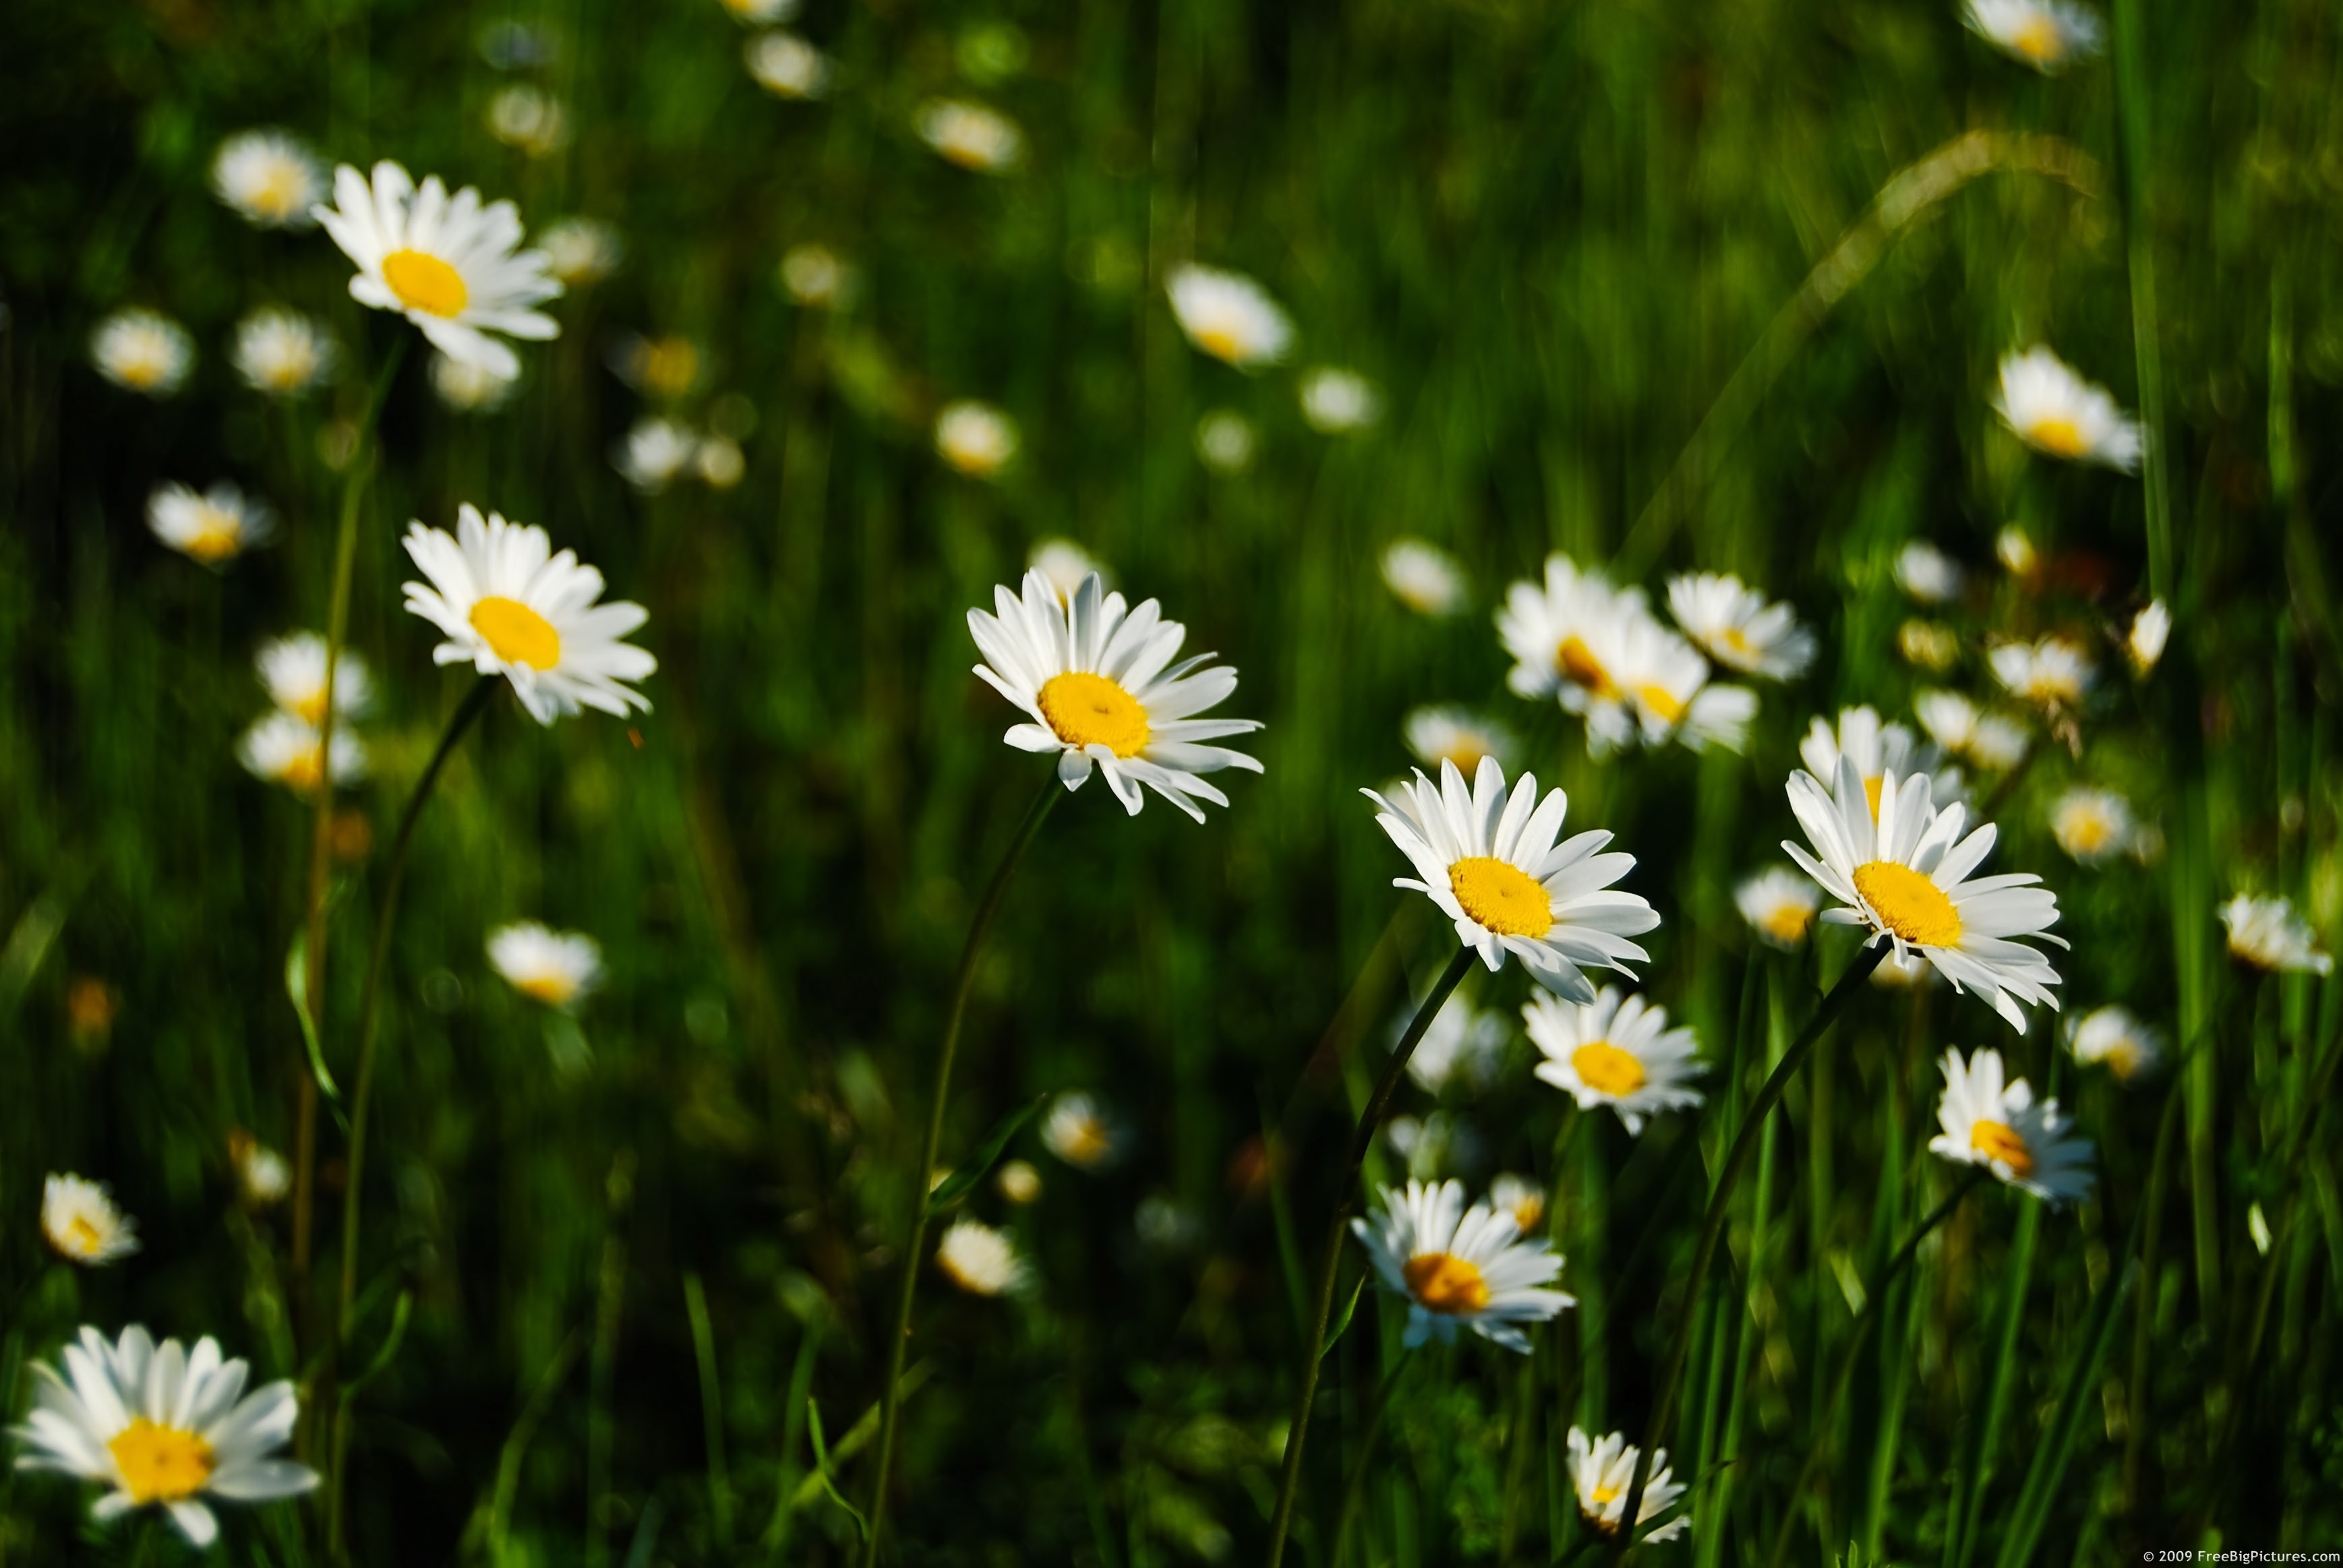 daisies field, Beautiful flower